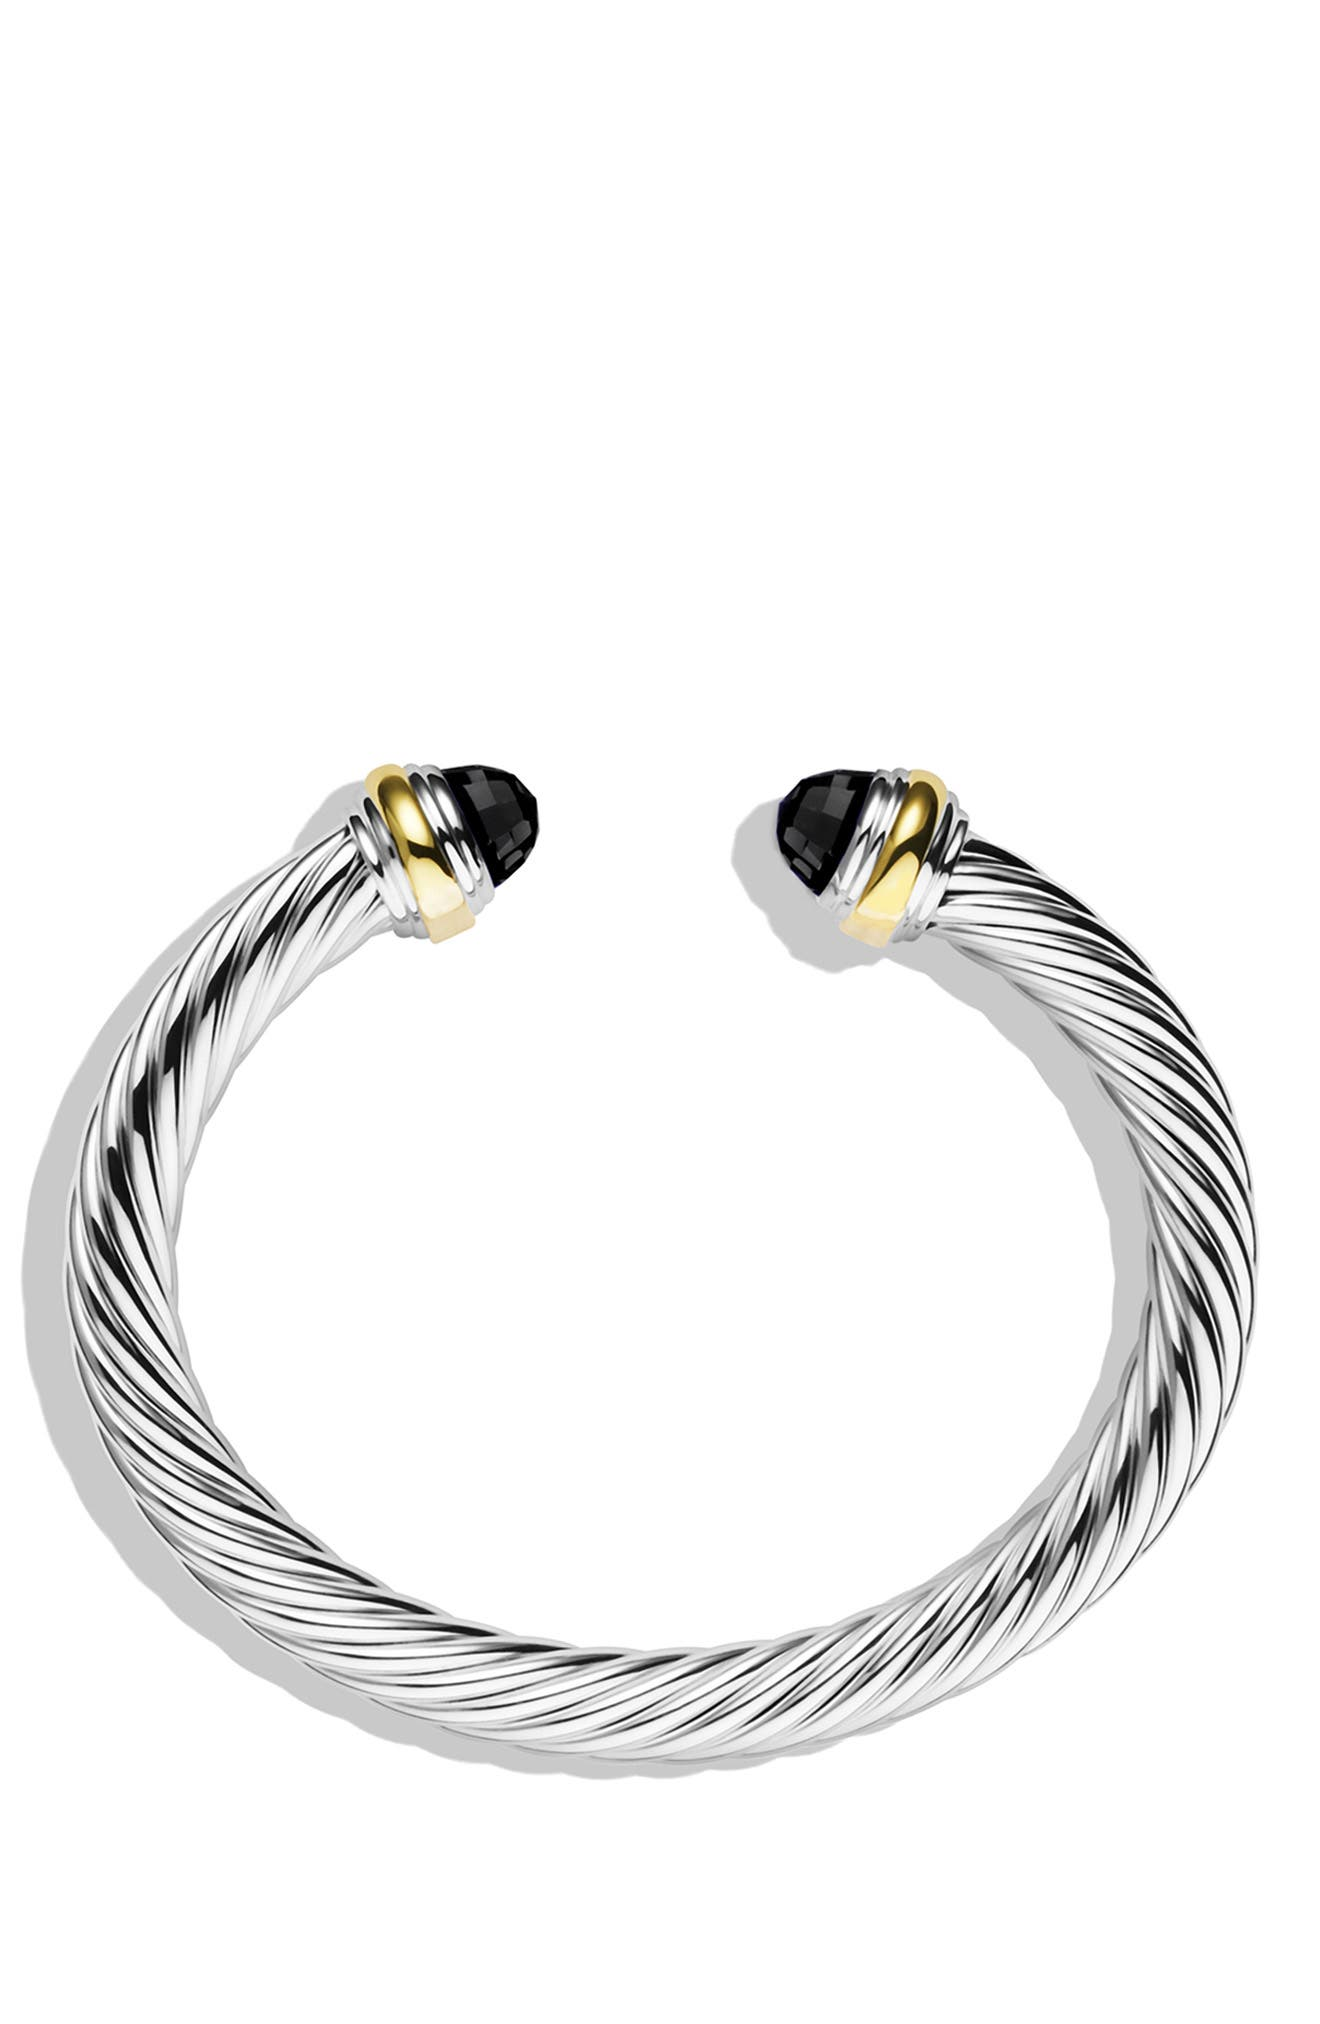 Cable Classics Bracelet with Semiprecious Stones & 14K Gold, 7mm,                             Alternate thumbnail 2, color,                             BLACK ONYX